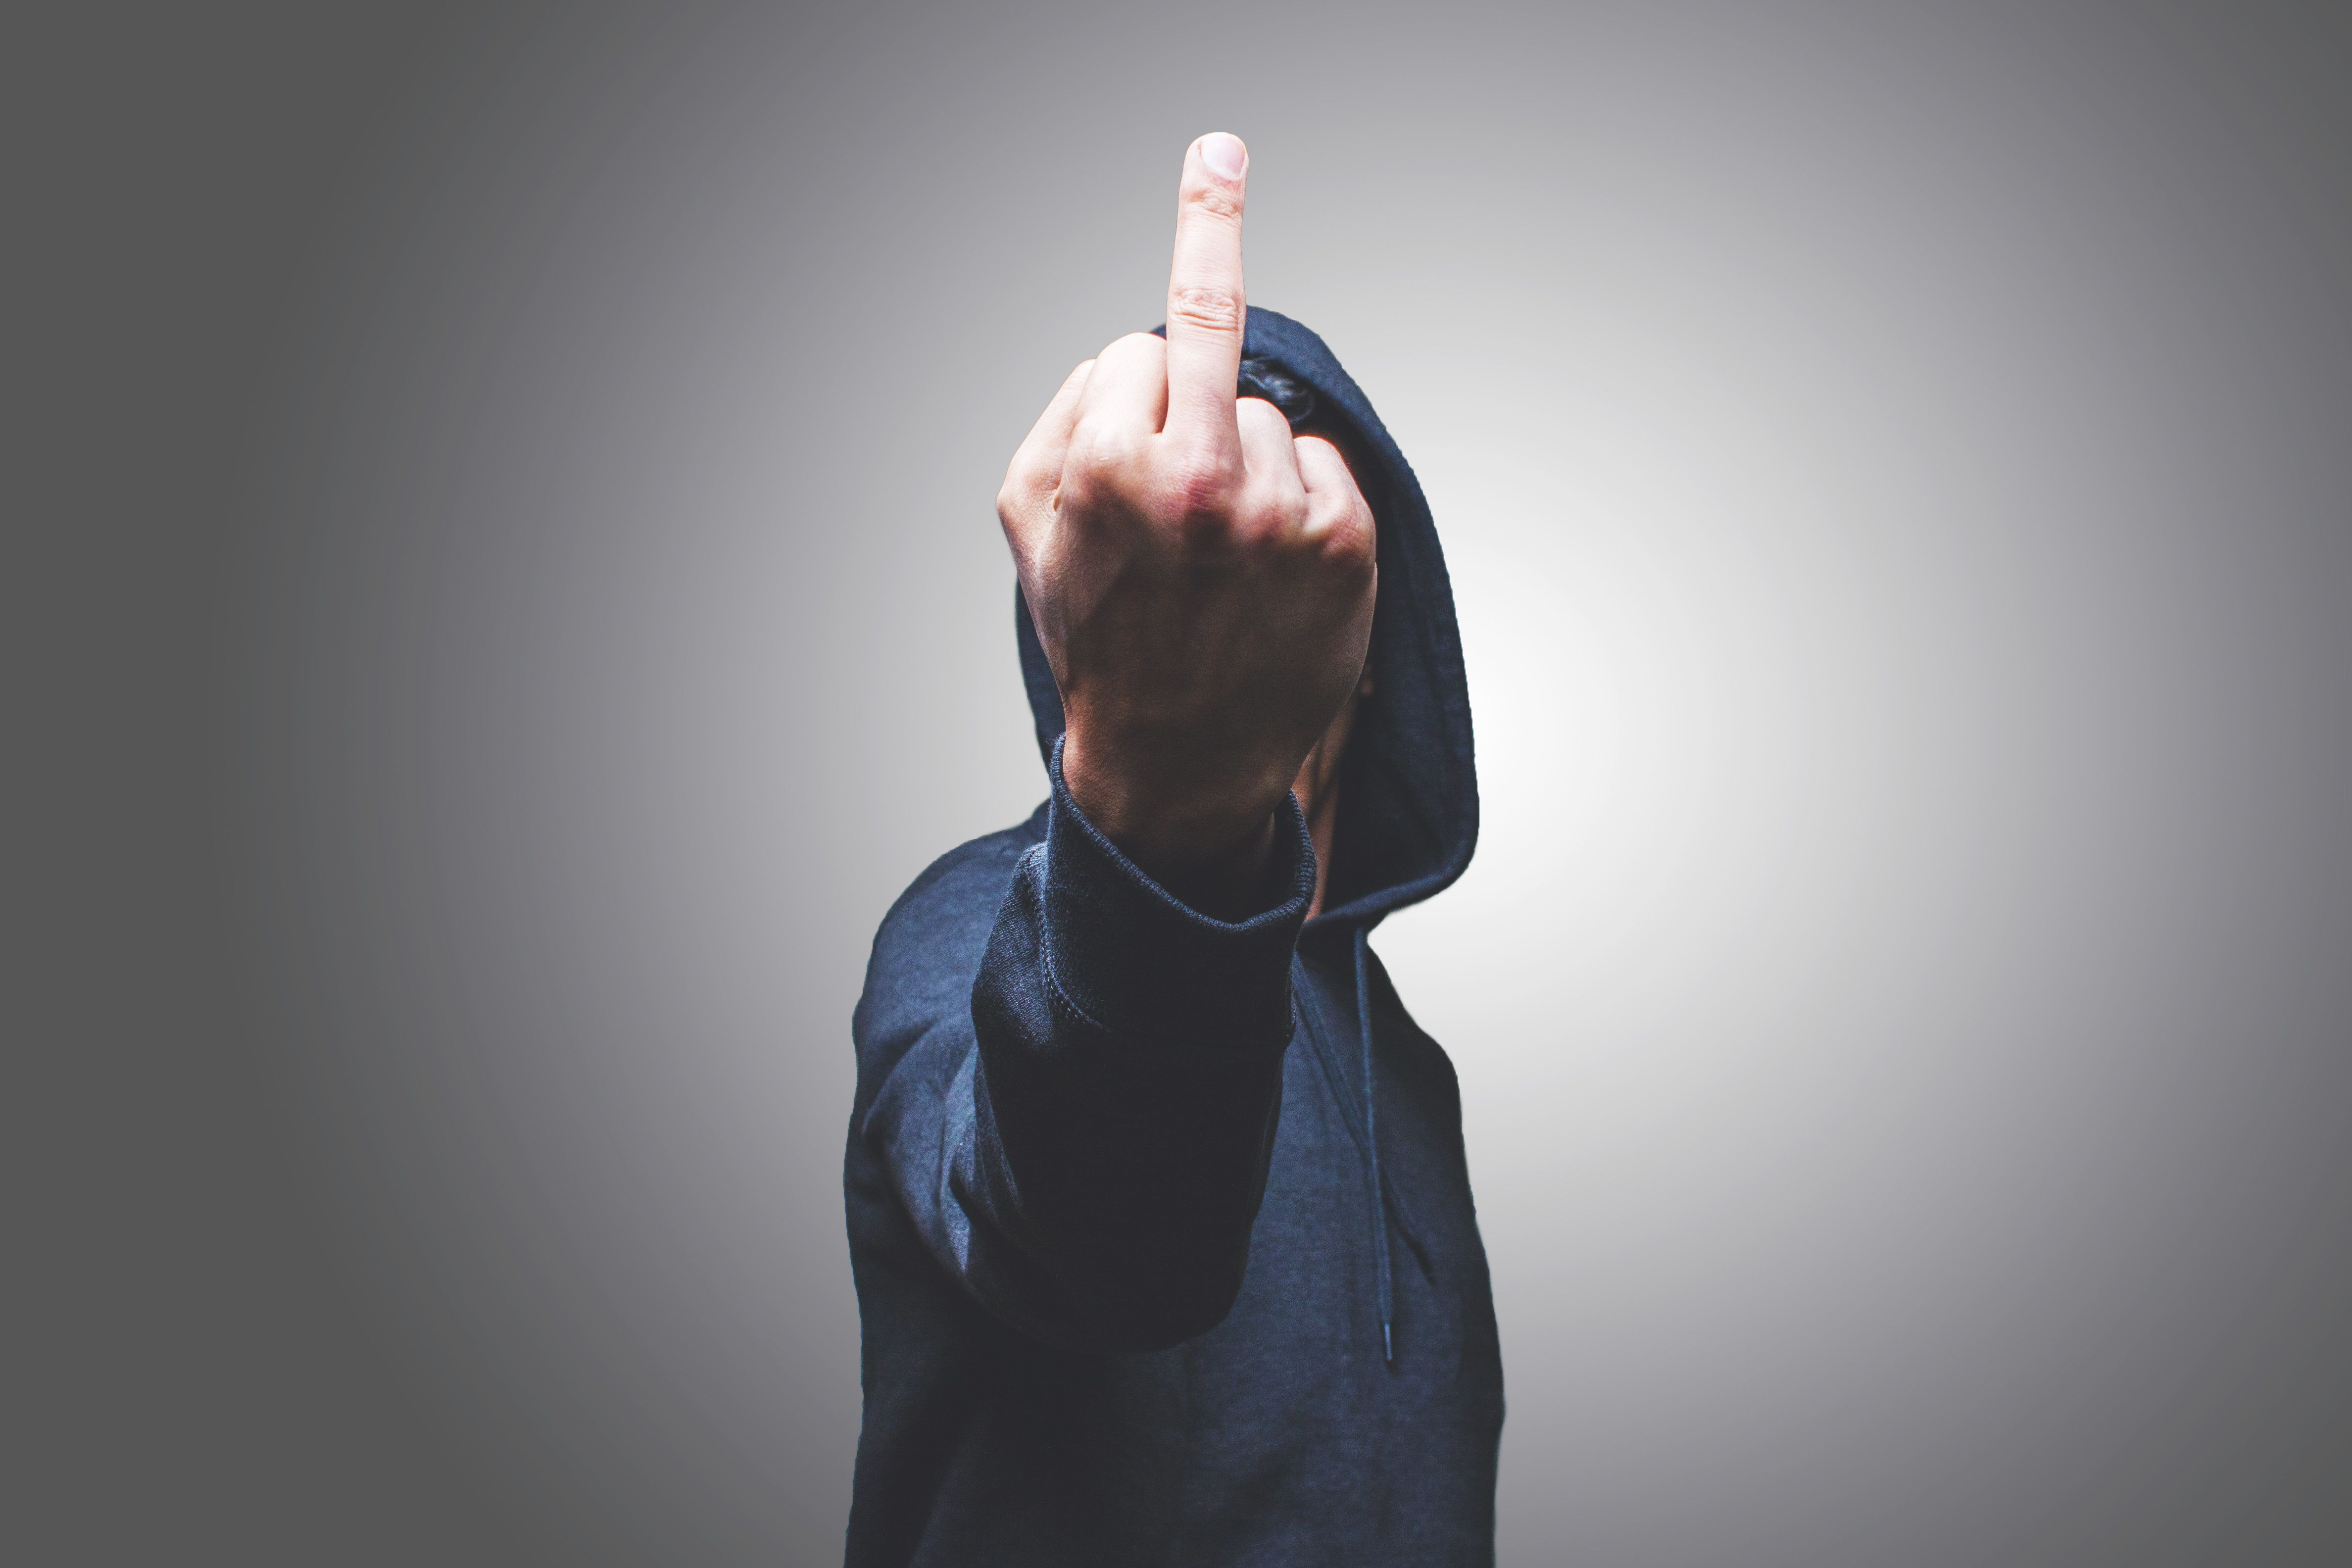 view of a man showing his middle finger hiding his face